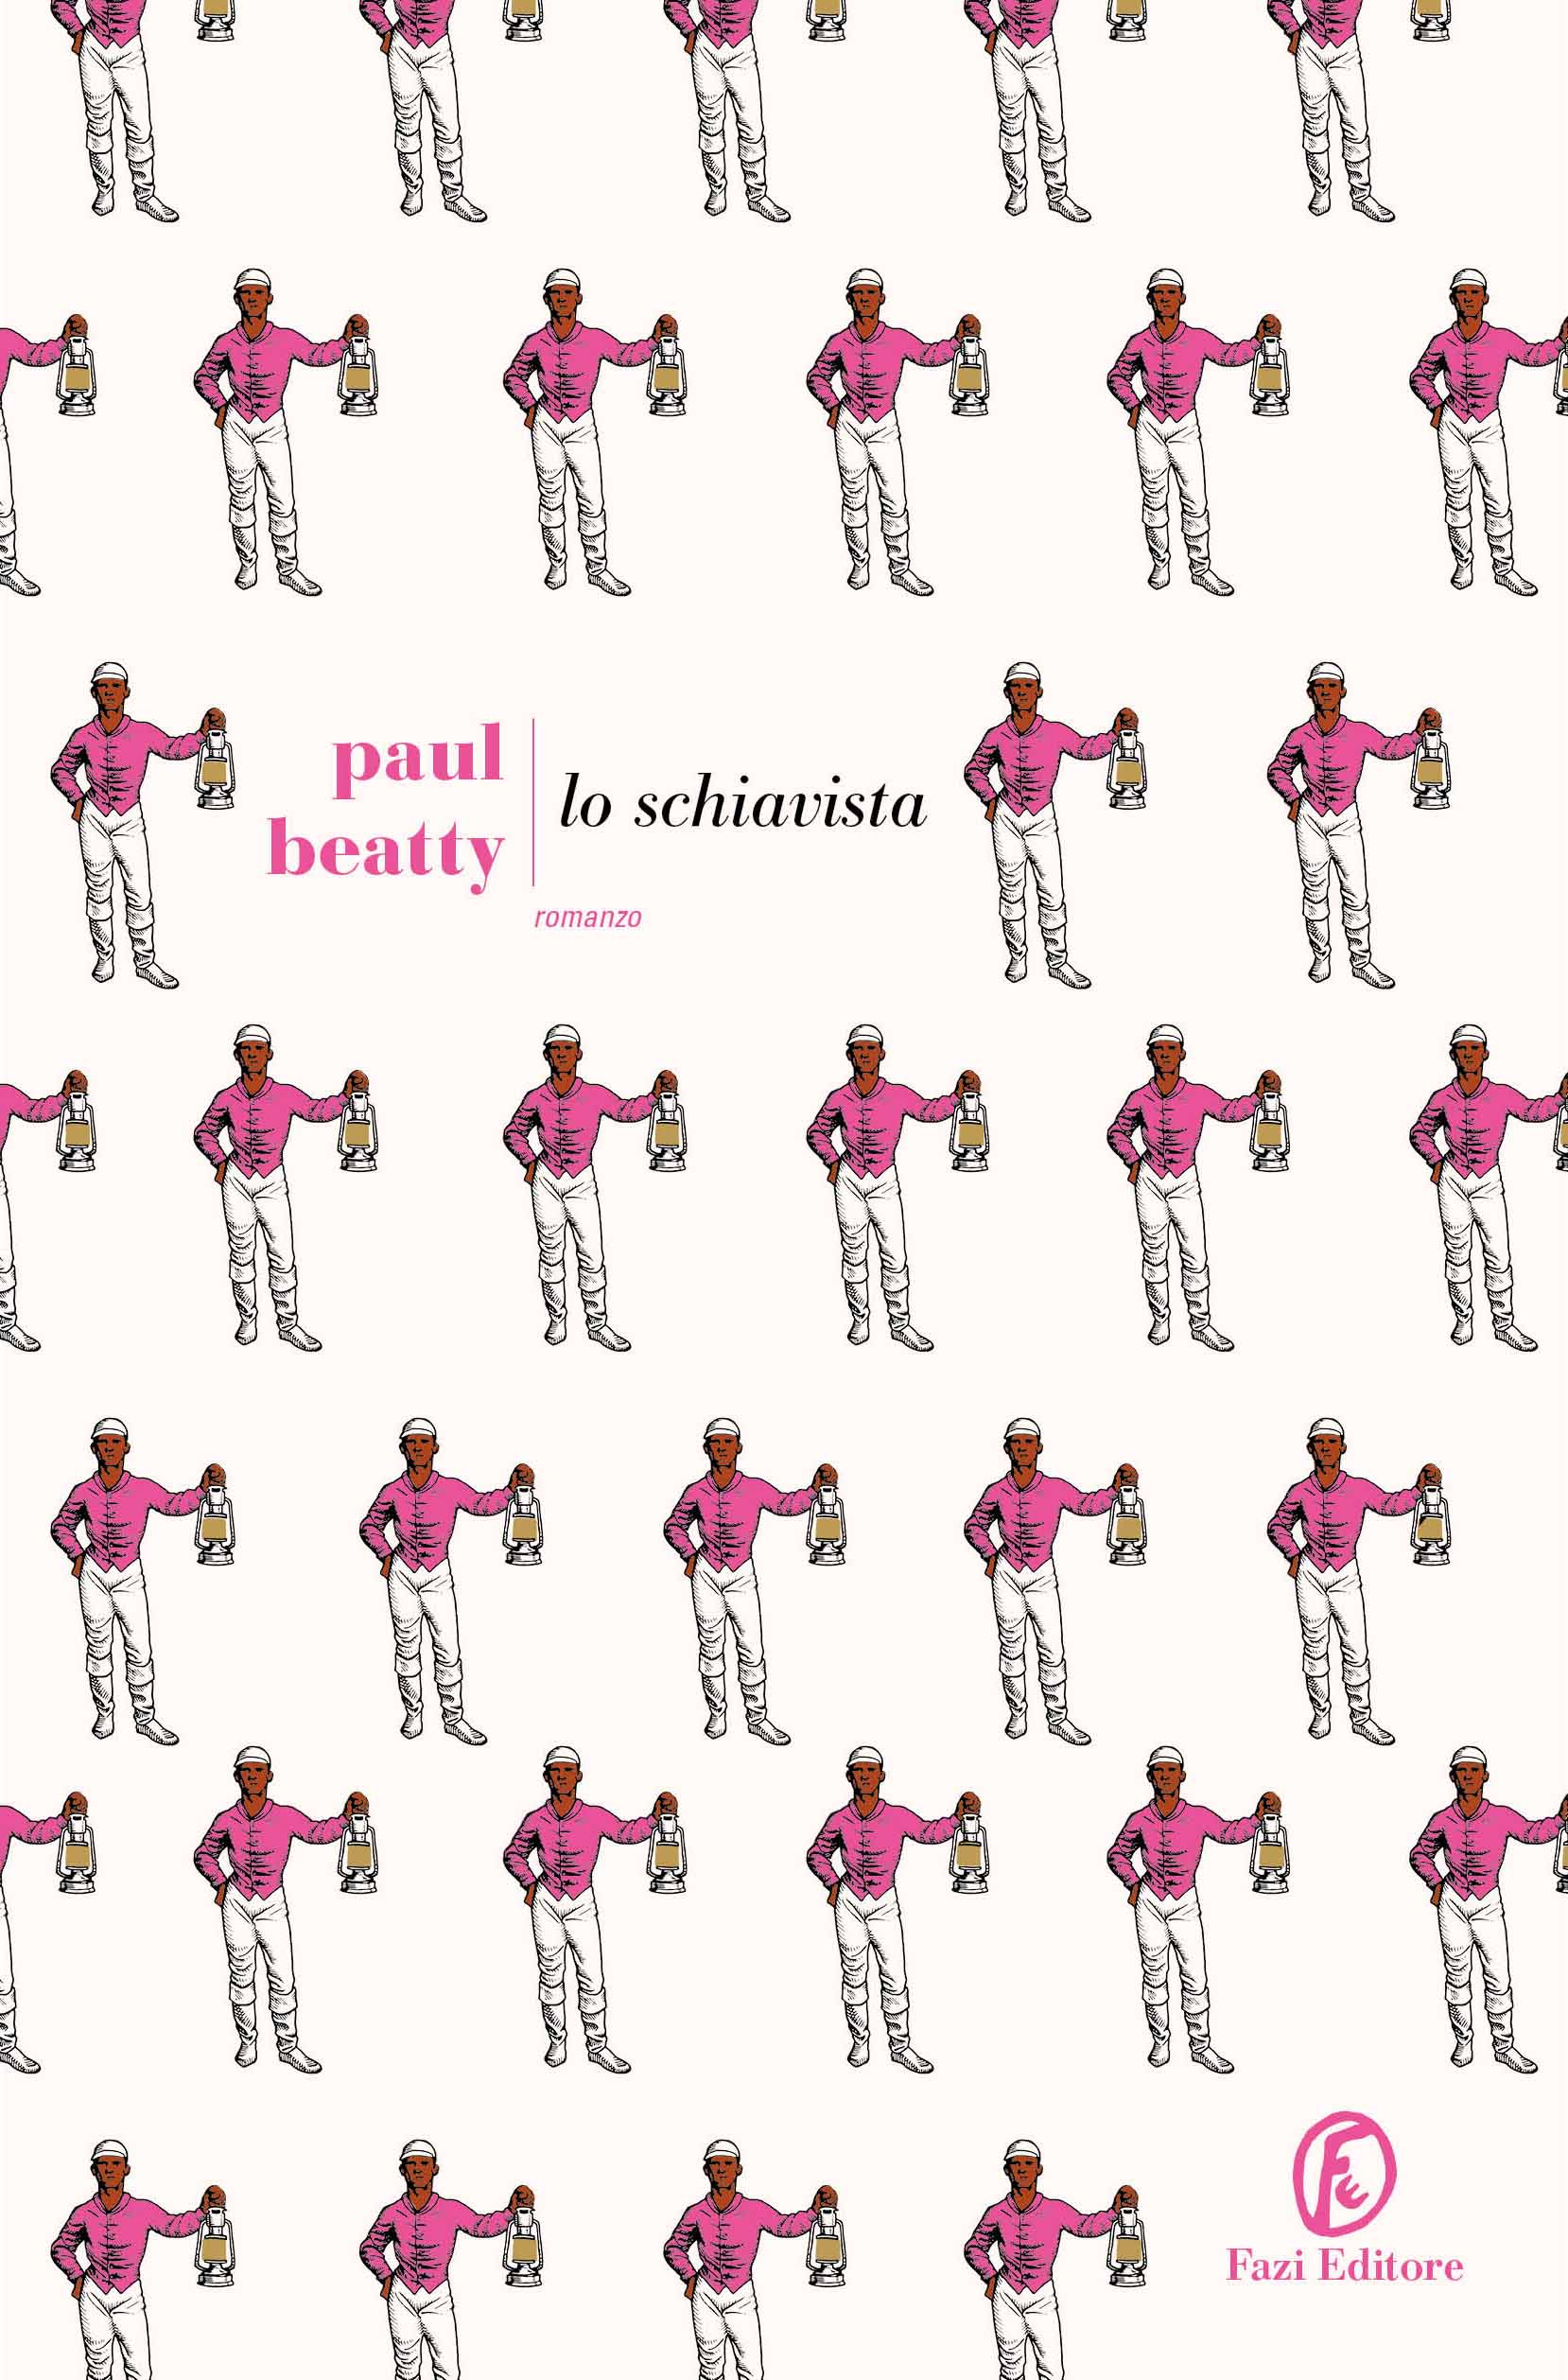 Lo schiavista - Paul Beatty